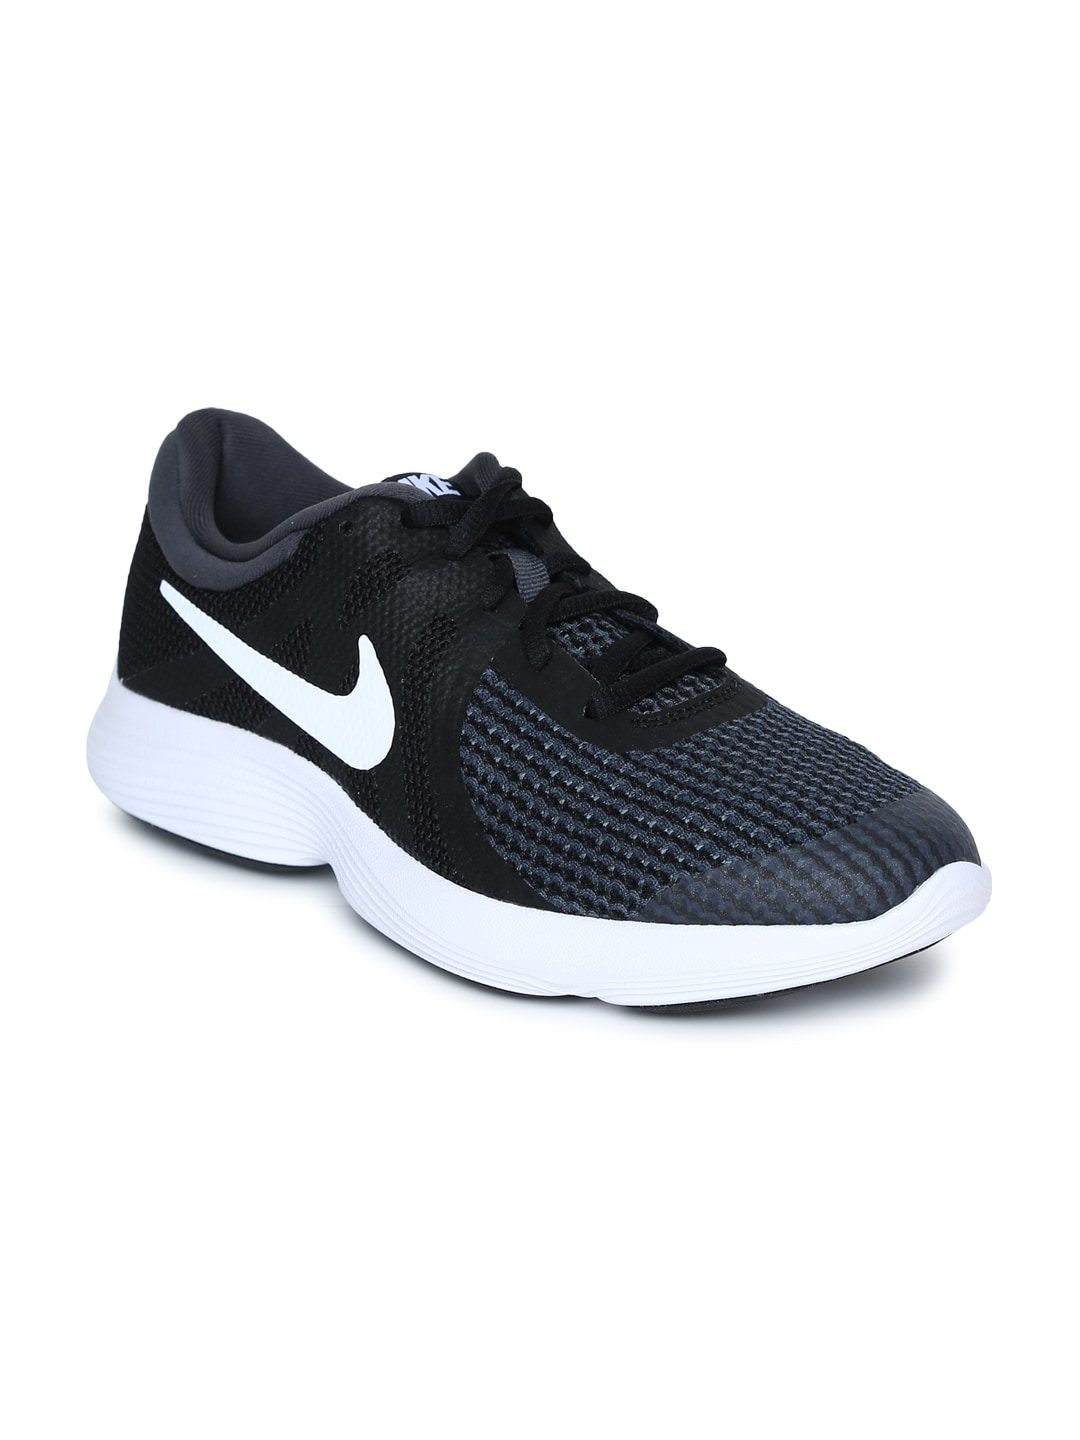 c19839d3eb9 Nike - Shop for Nike Apparels Online in India